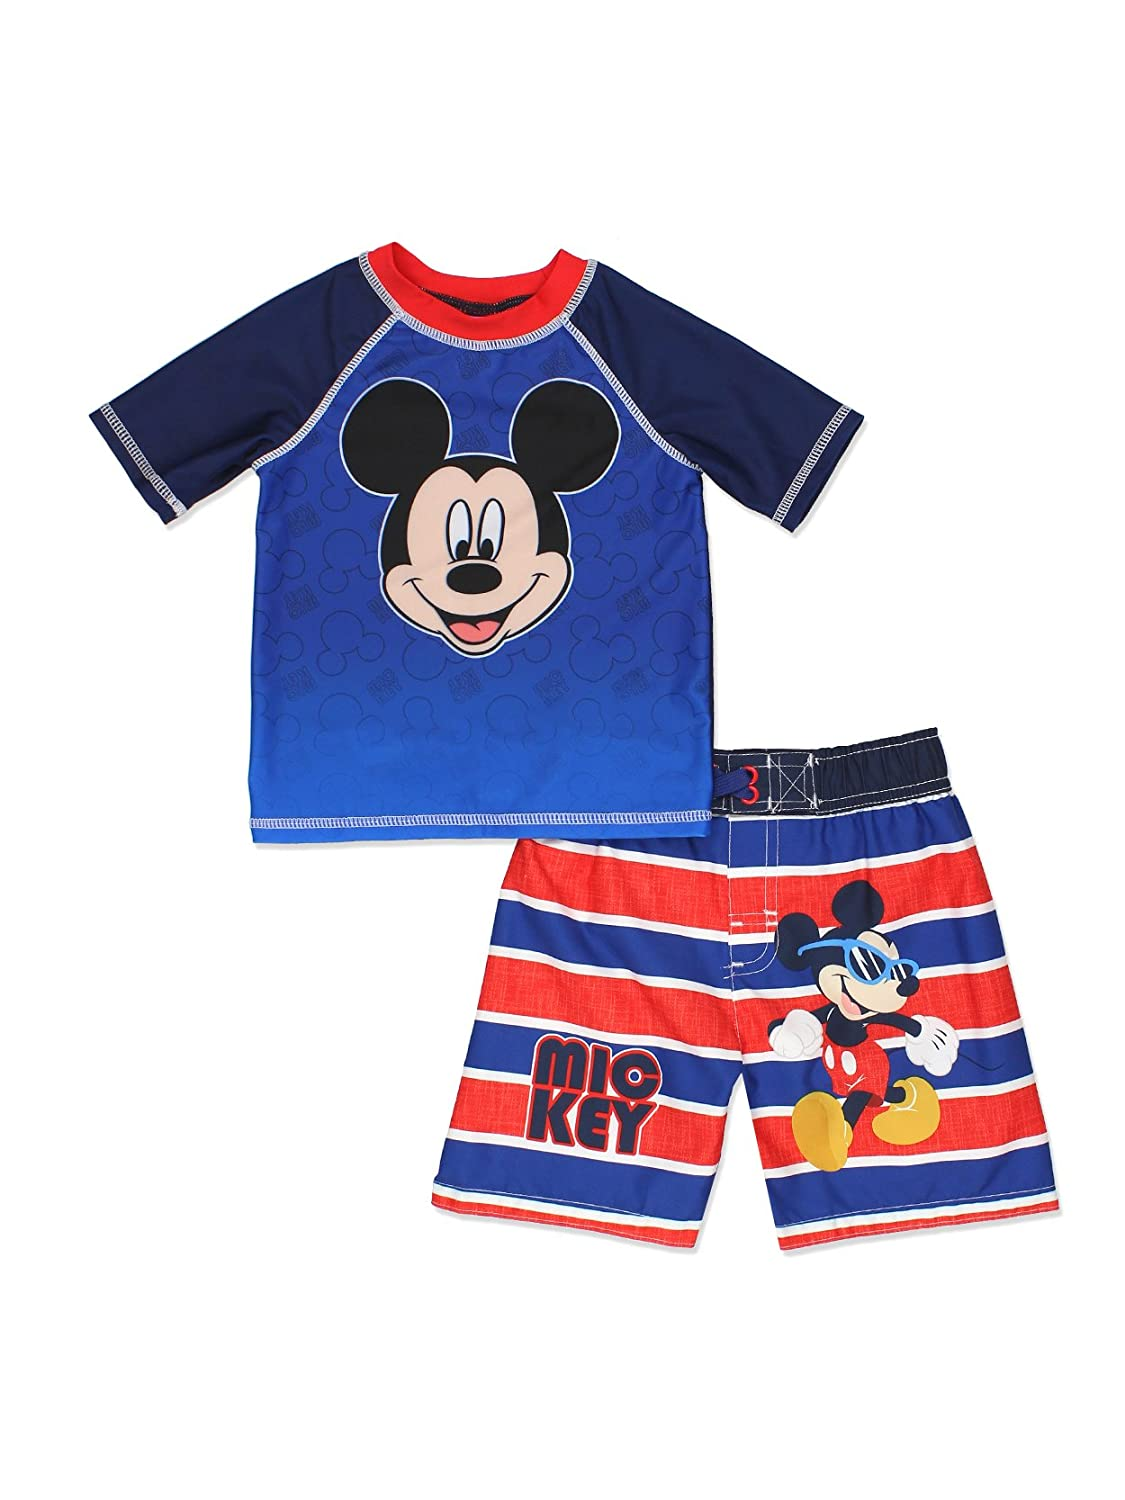 Mickey Mouse and The Roadster Racers Toddler Boys Swim Trunks and Rash Guard Set Dreamwave